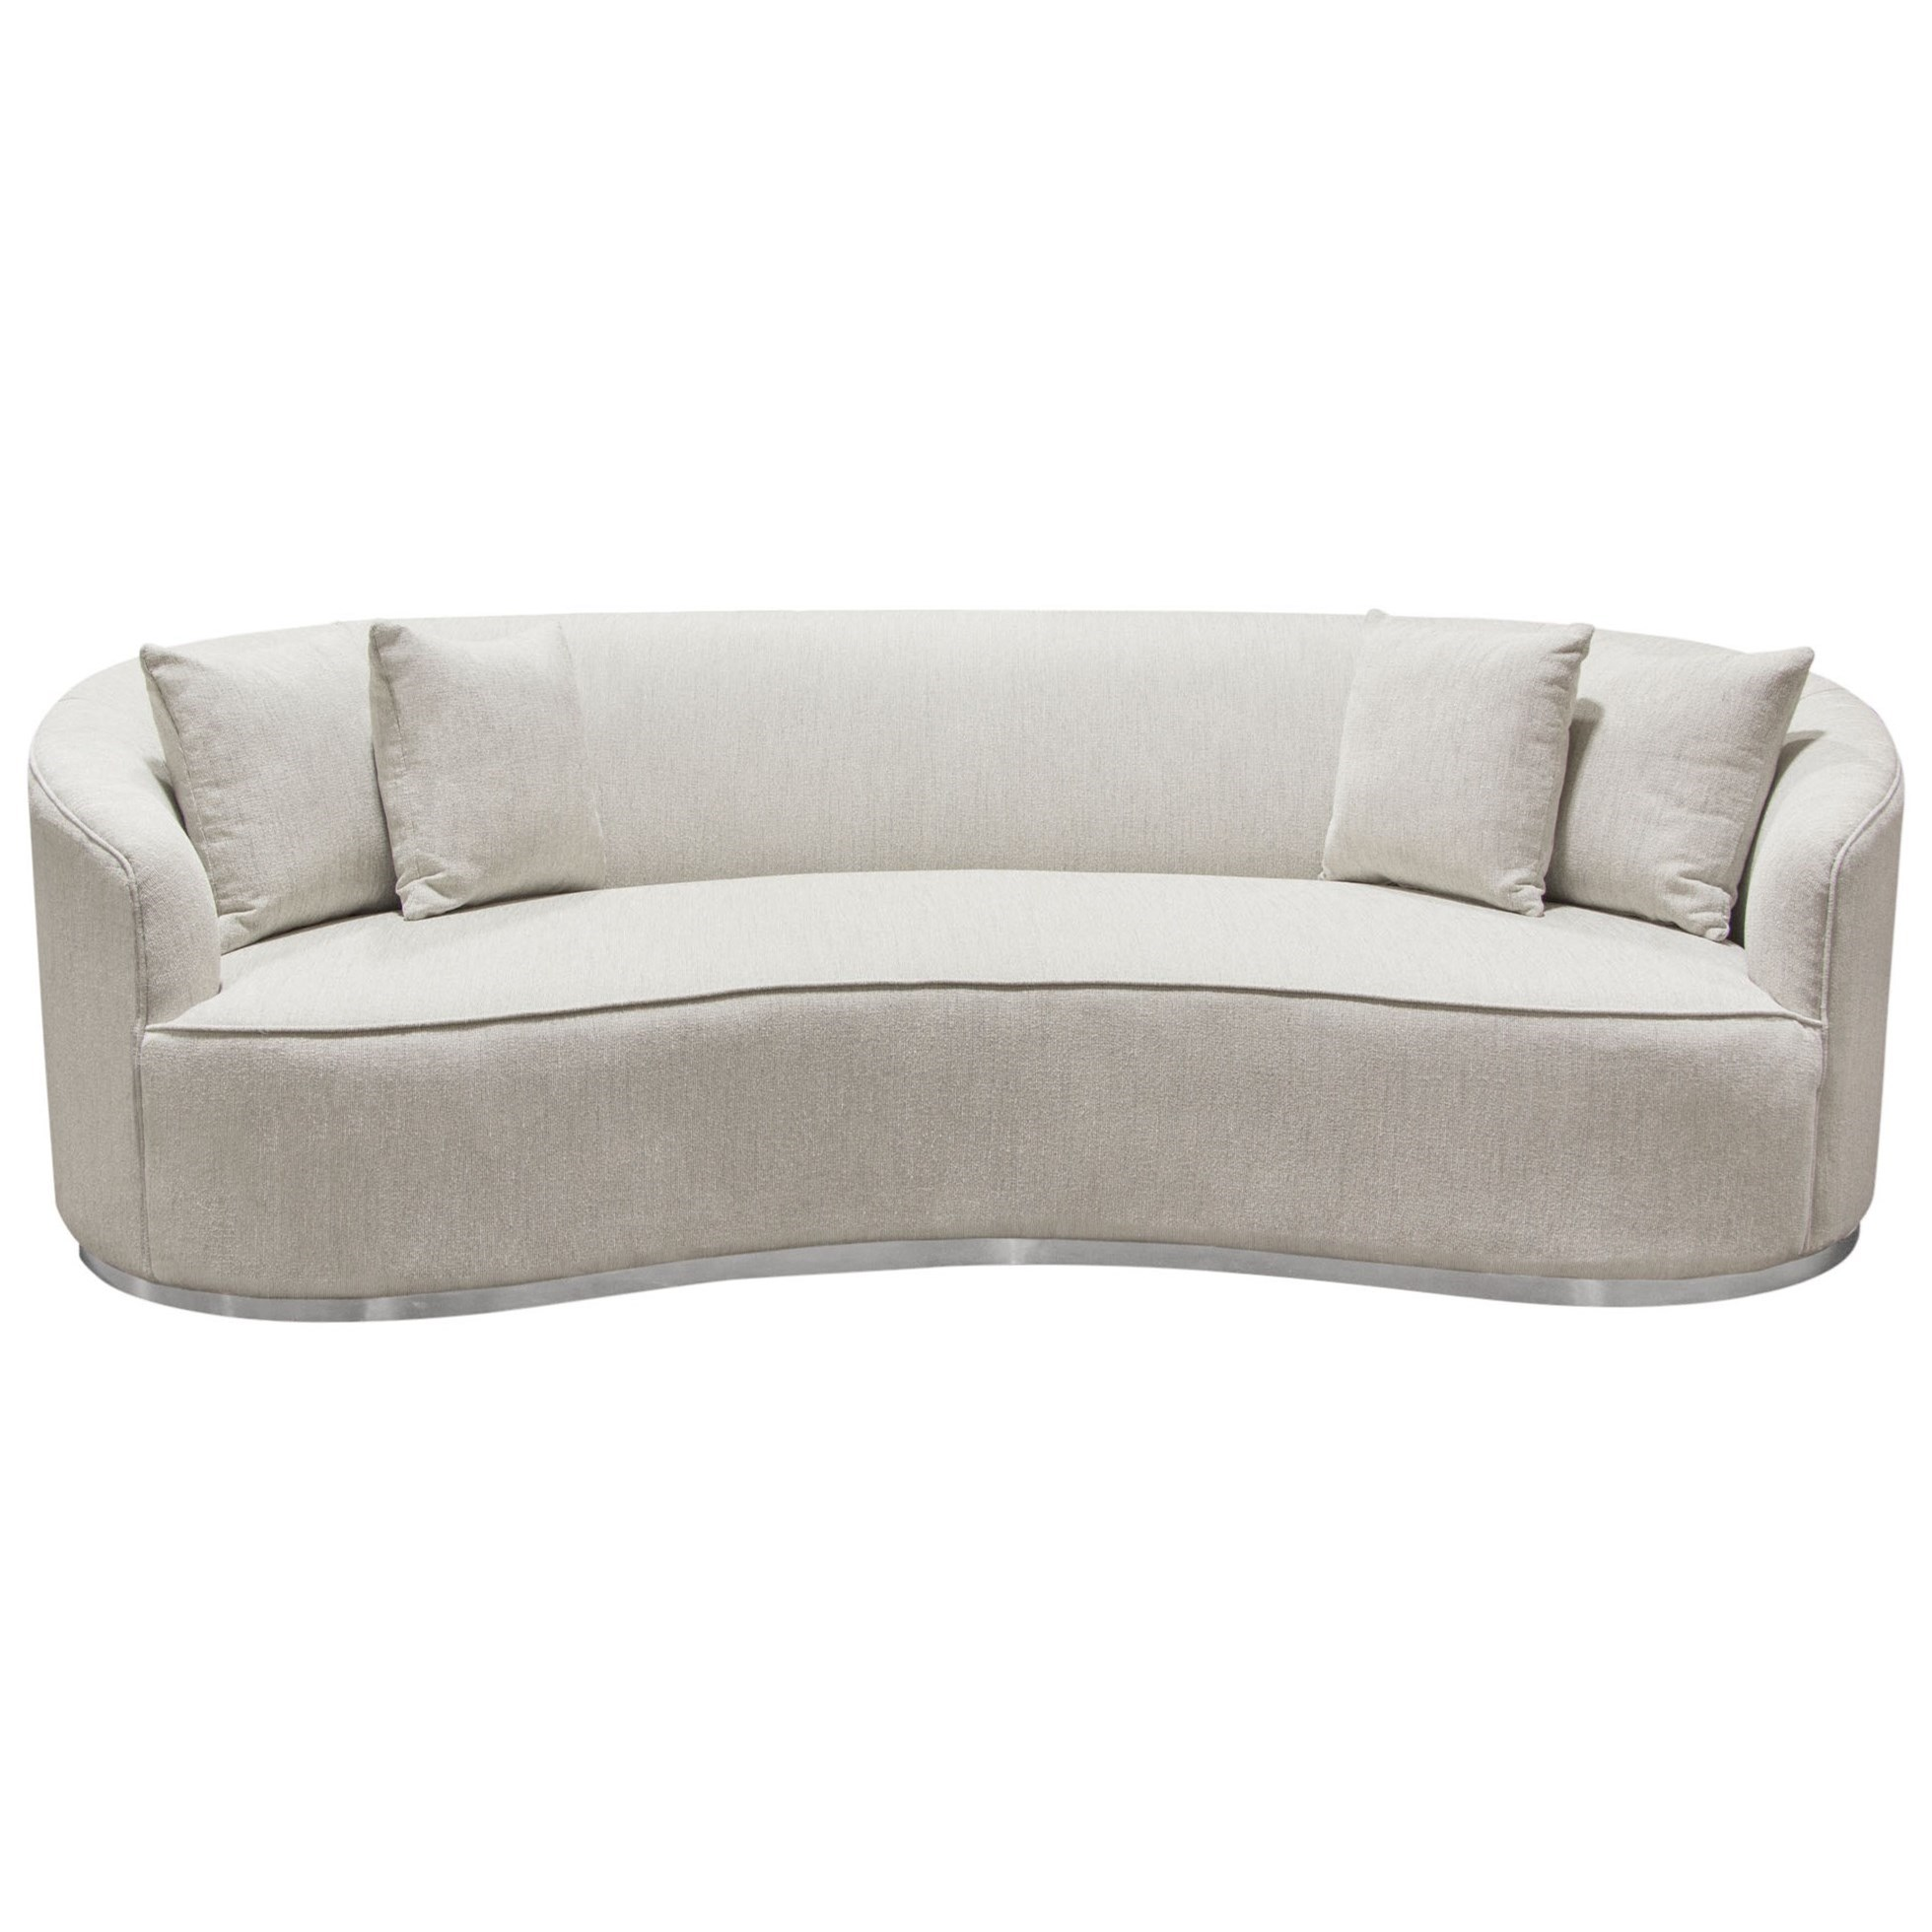 Raven Sofa Brushed with Accent Trim by Diamond Sofa at Red Knot